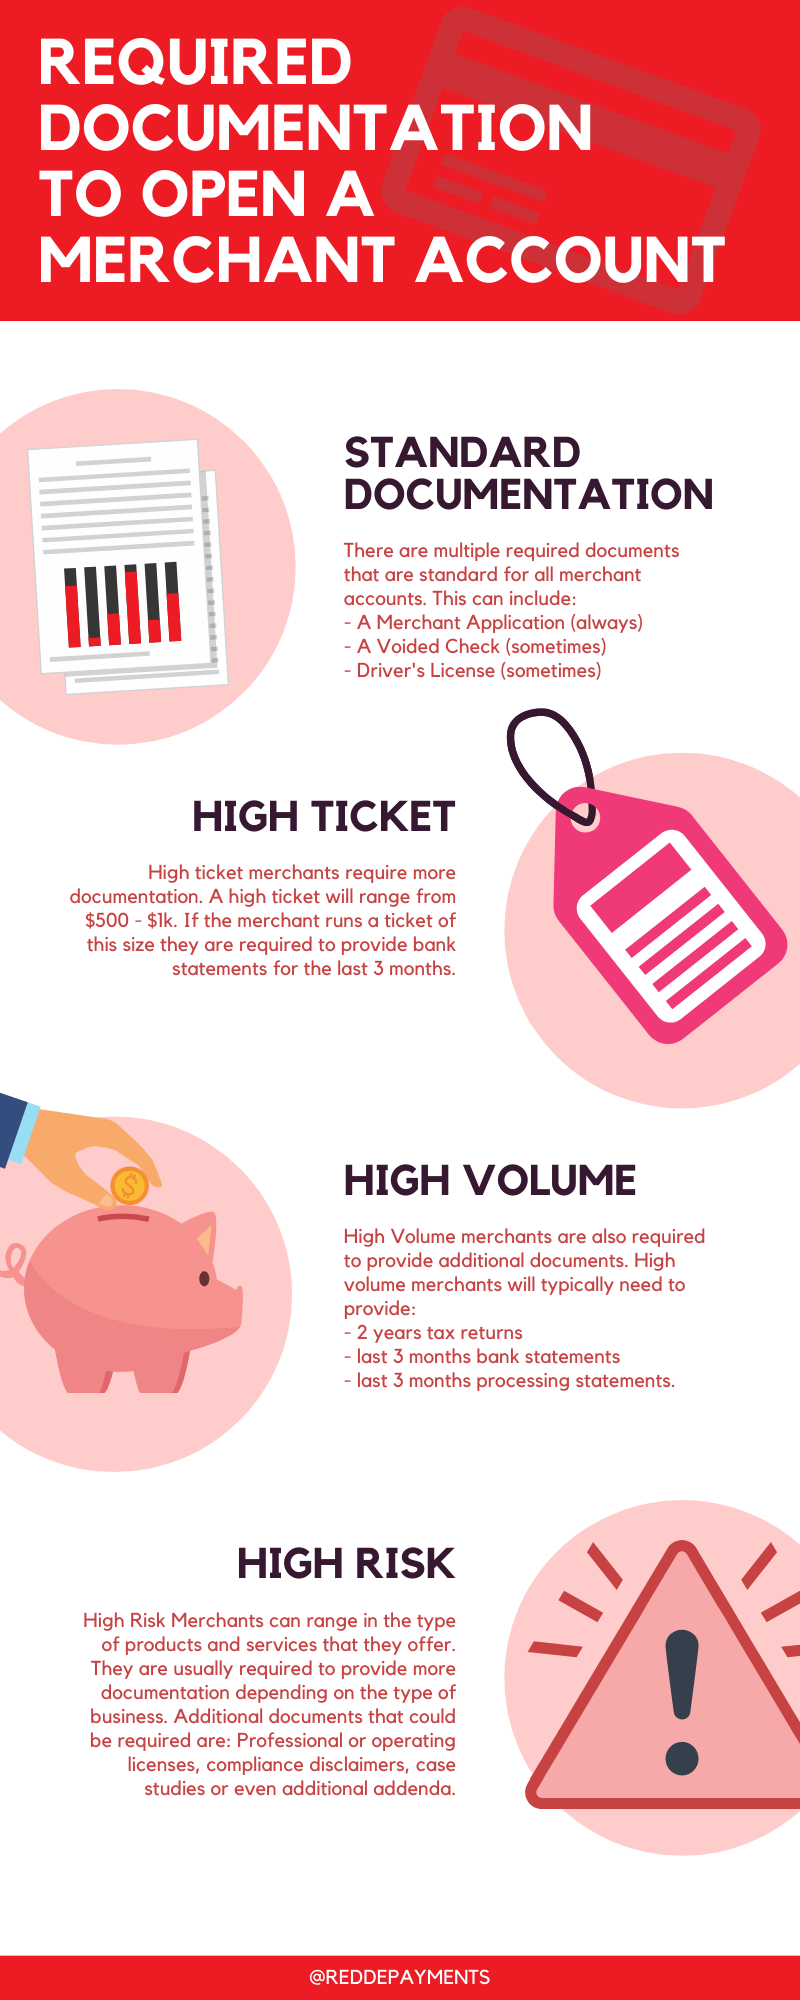 Docs For A Merchant Account Infographic